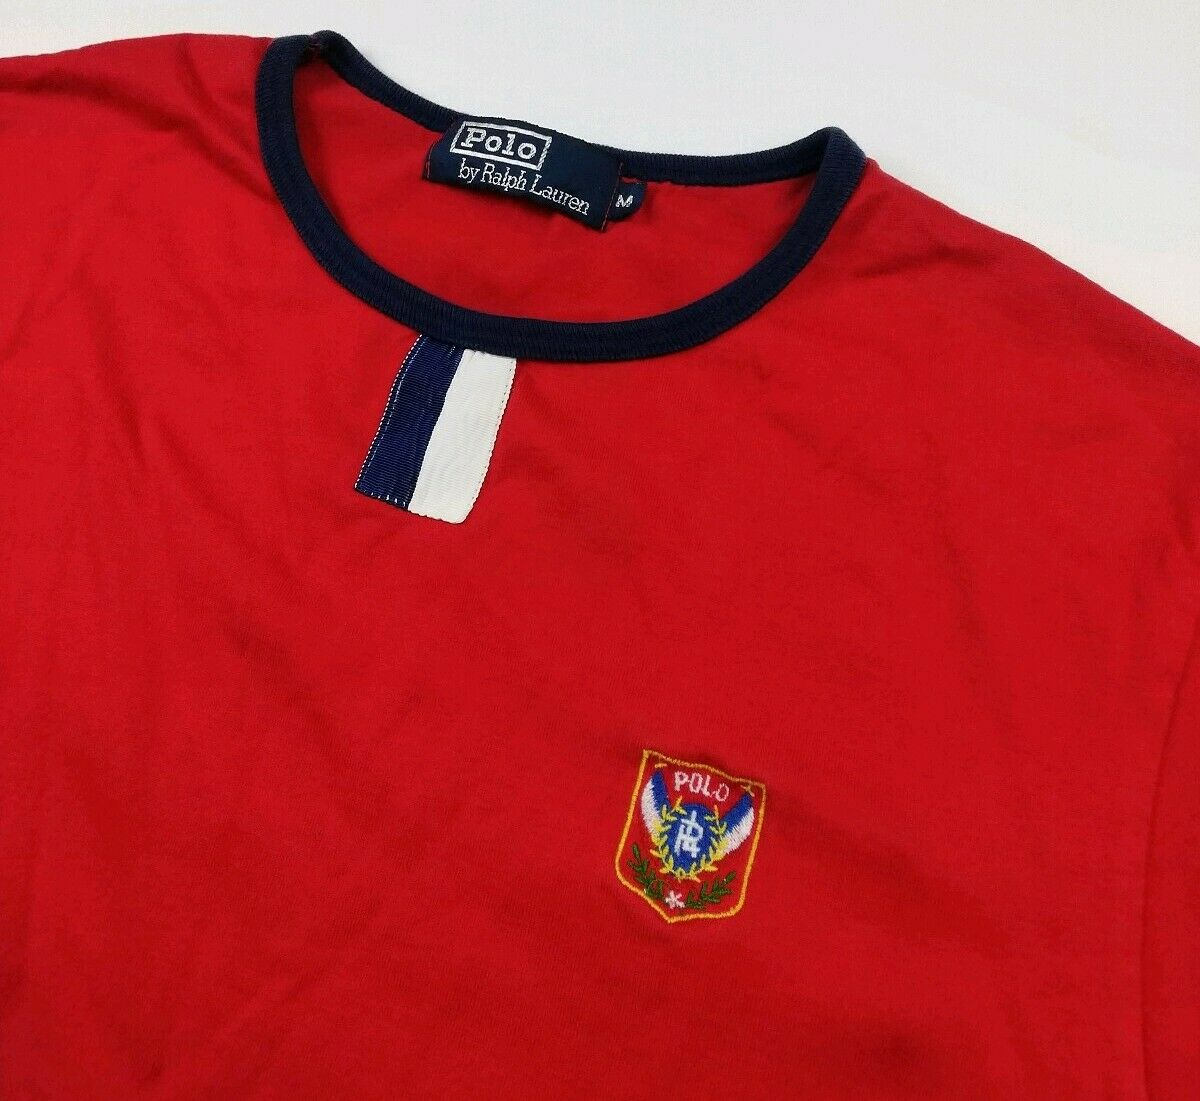 Vintage Polo Ralph Lauren Embroidered Uni Crest T Shirt Very Rare 80s USA RL EUC